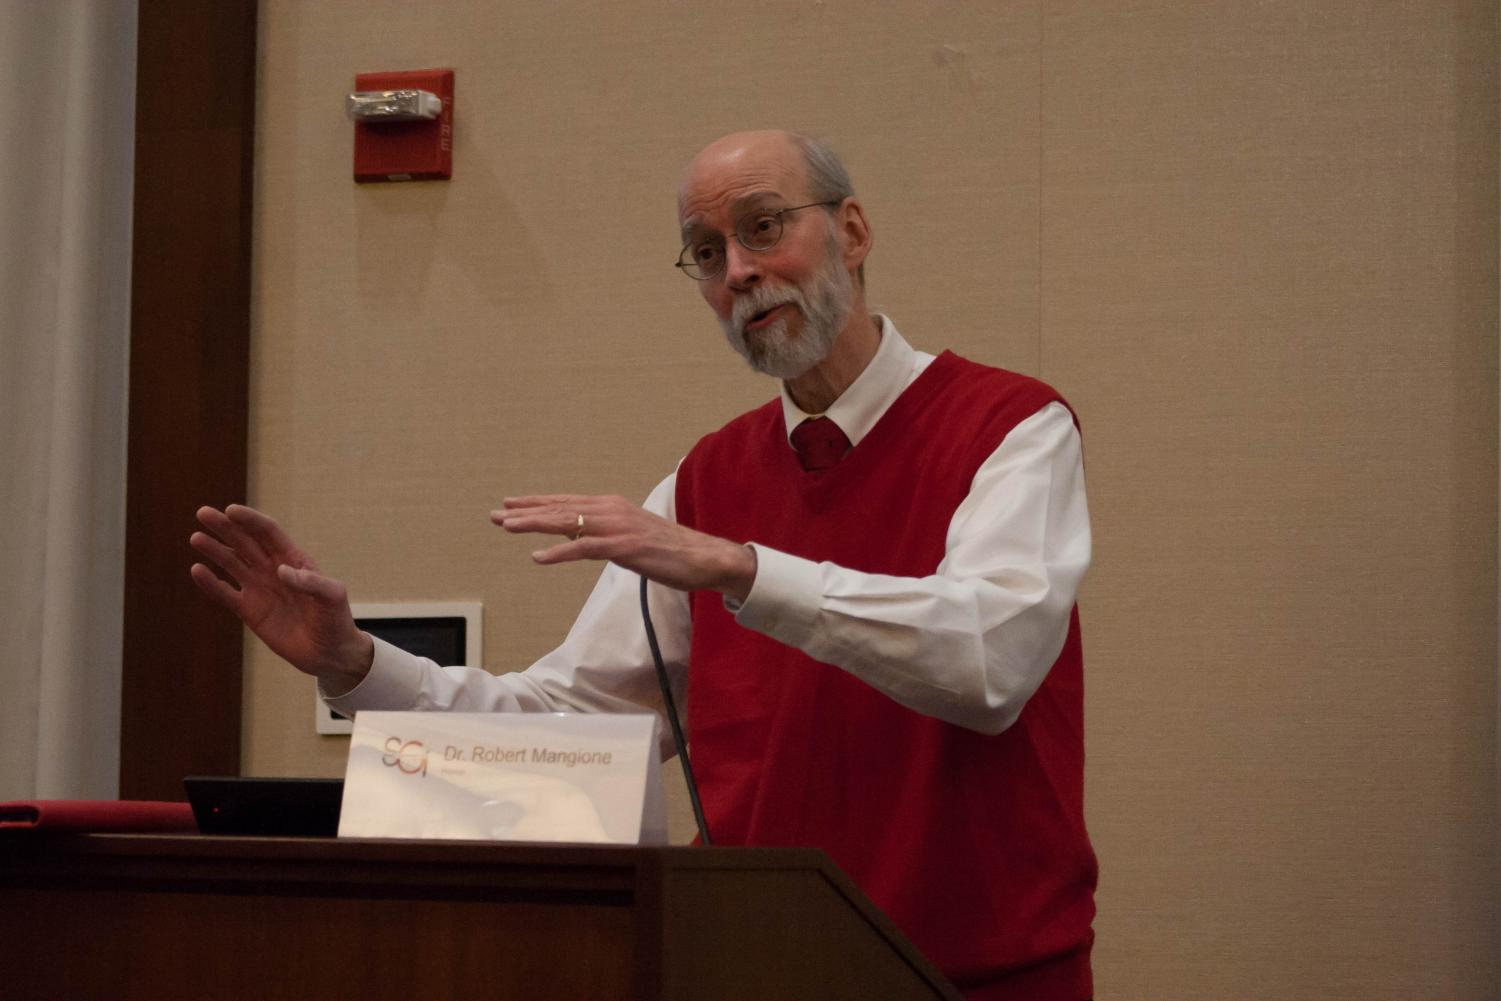 Dr. Mangione addressed students on March 1 at the meeting.